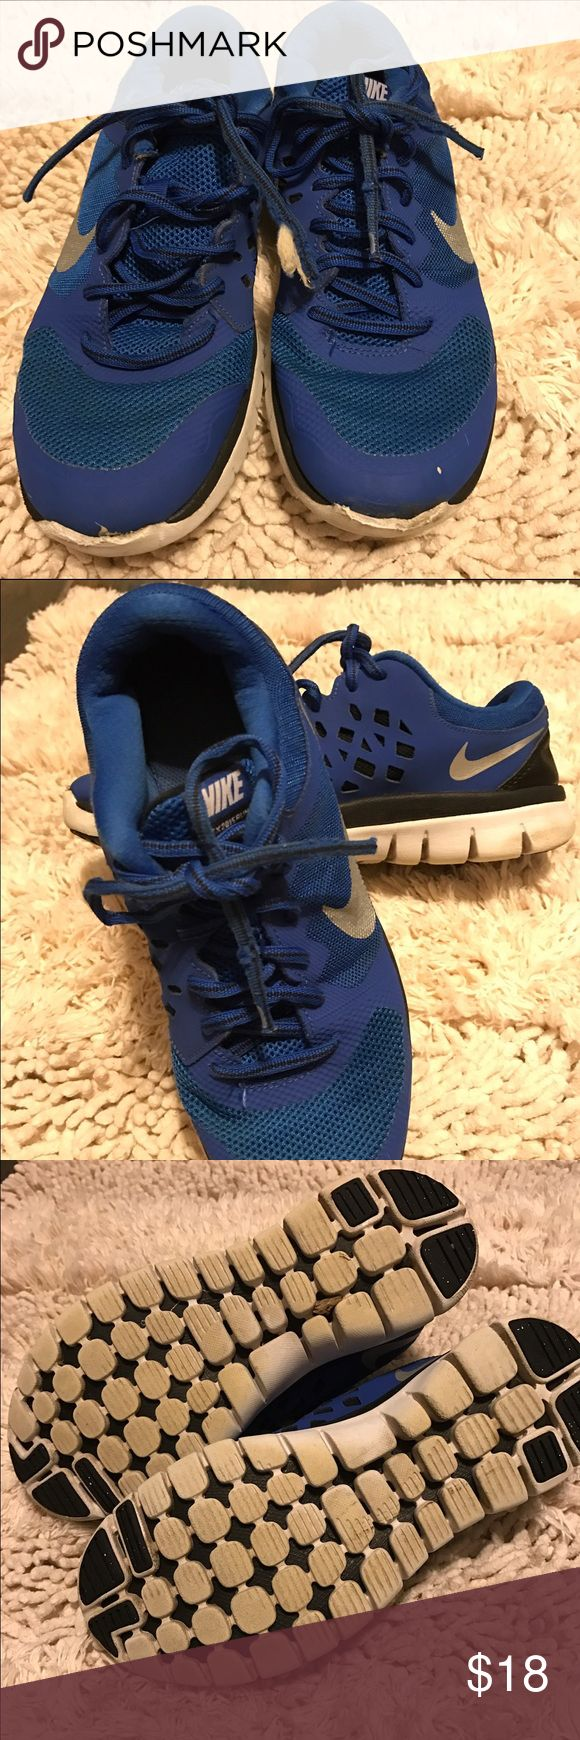 Nike Flex Experience Boys Running Shoes Size 6 1/2 Nike Flex Experience Boys Running Shoes Size 6 1/2 Blue Gray Black Excellent Condition Gently Worn Nike Flex Experience Shoes Sneakers